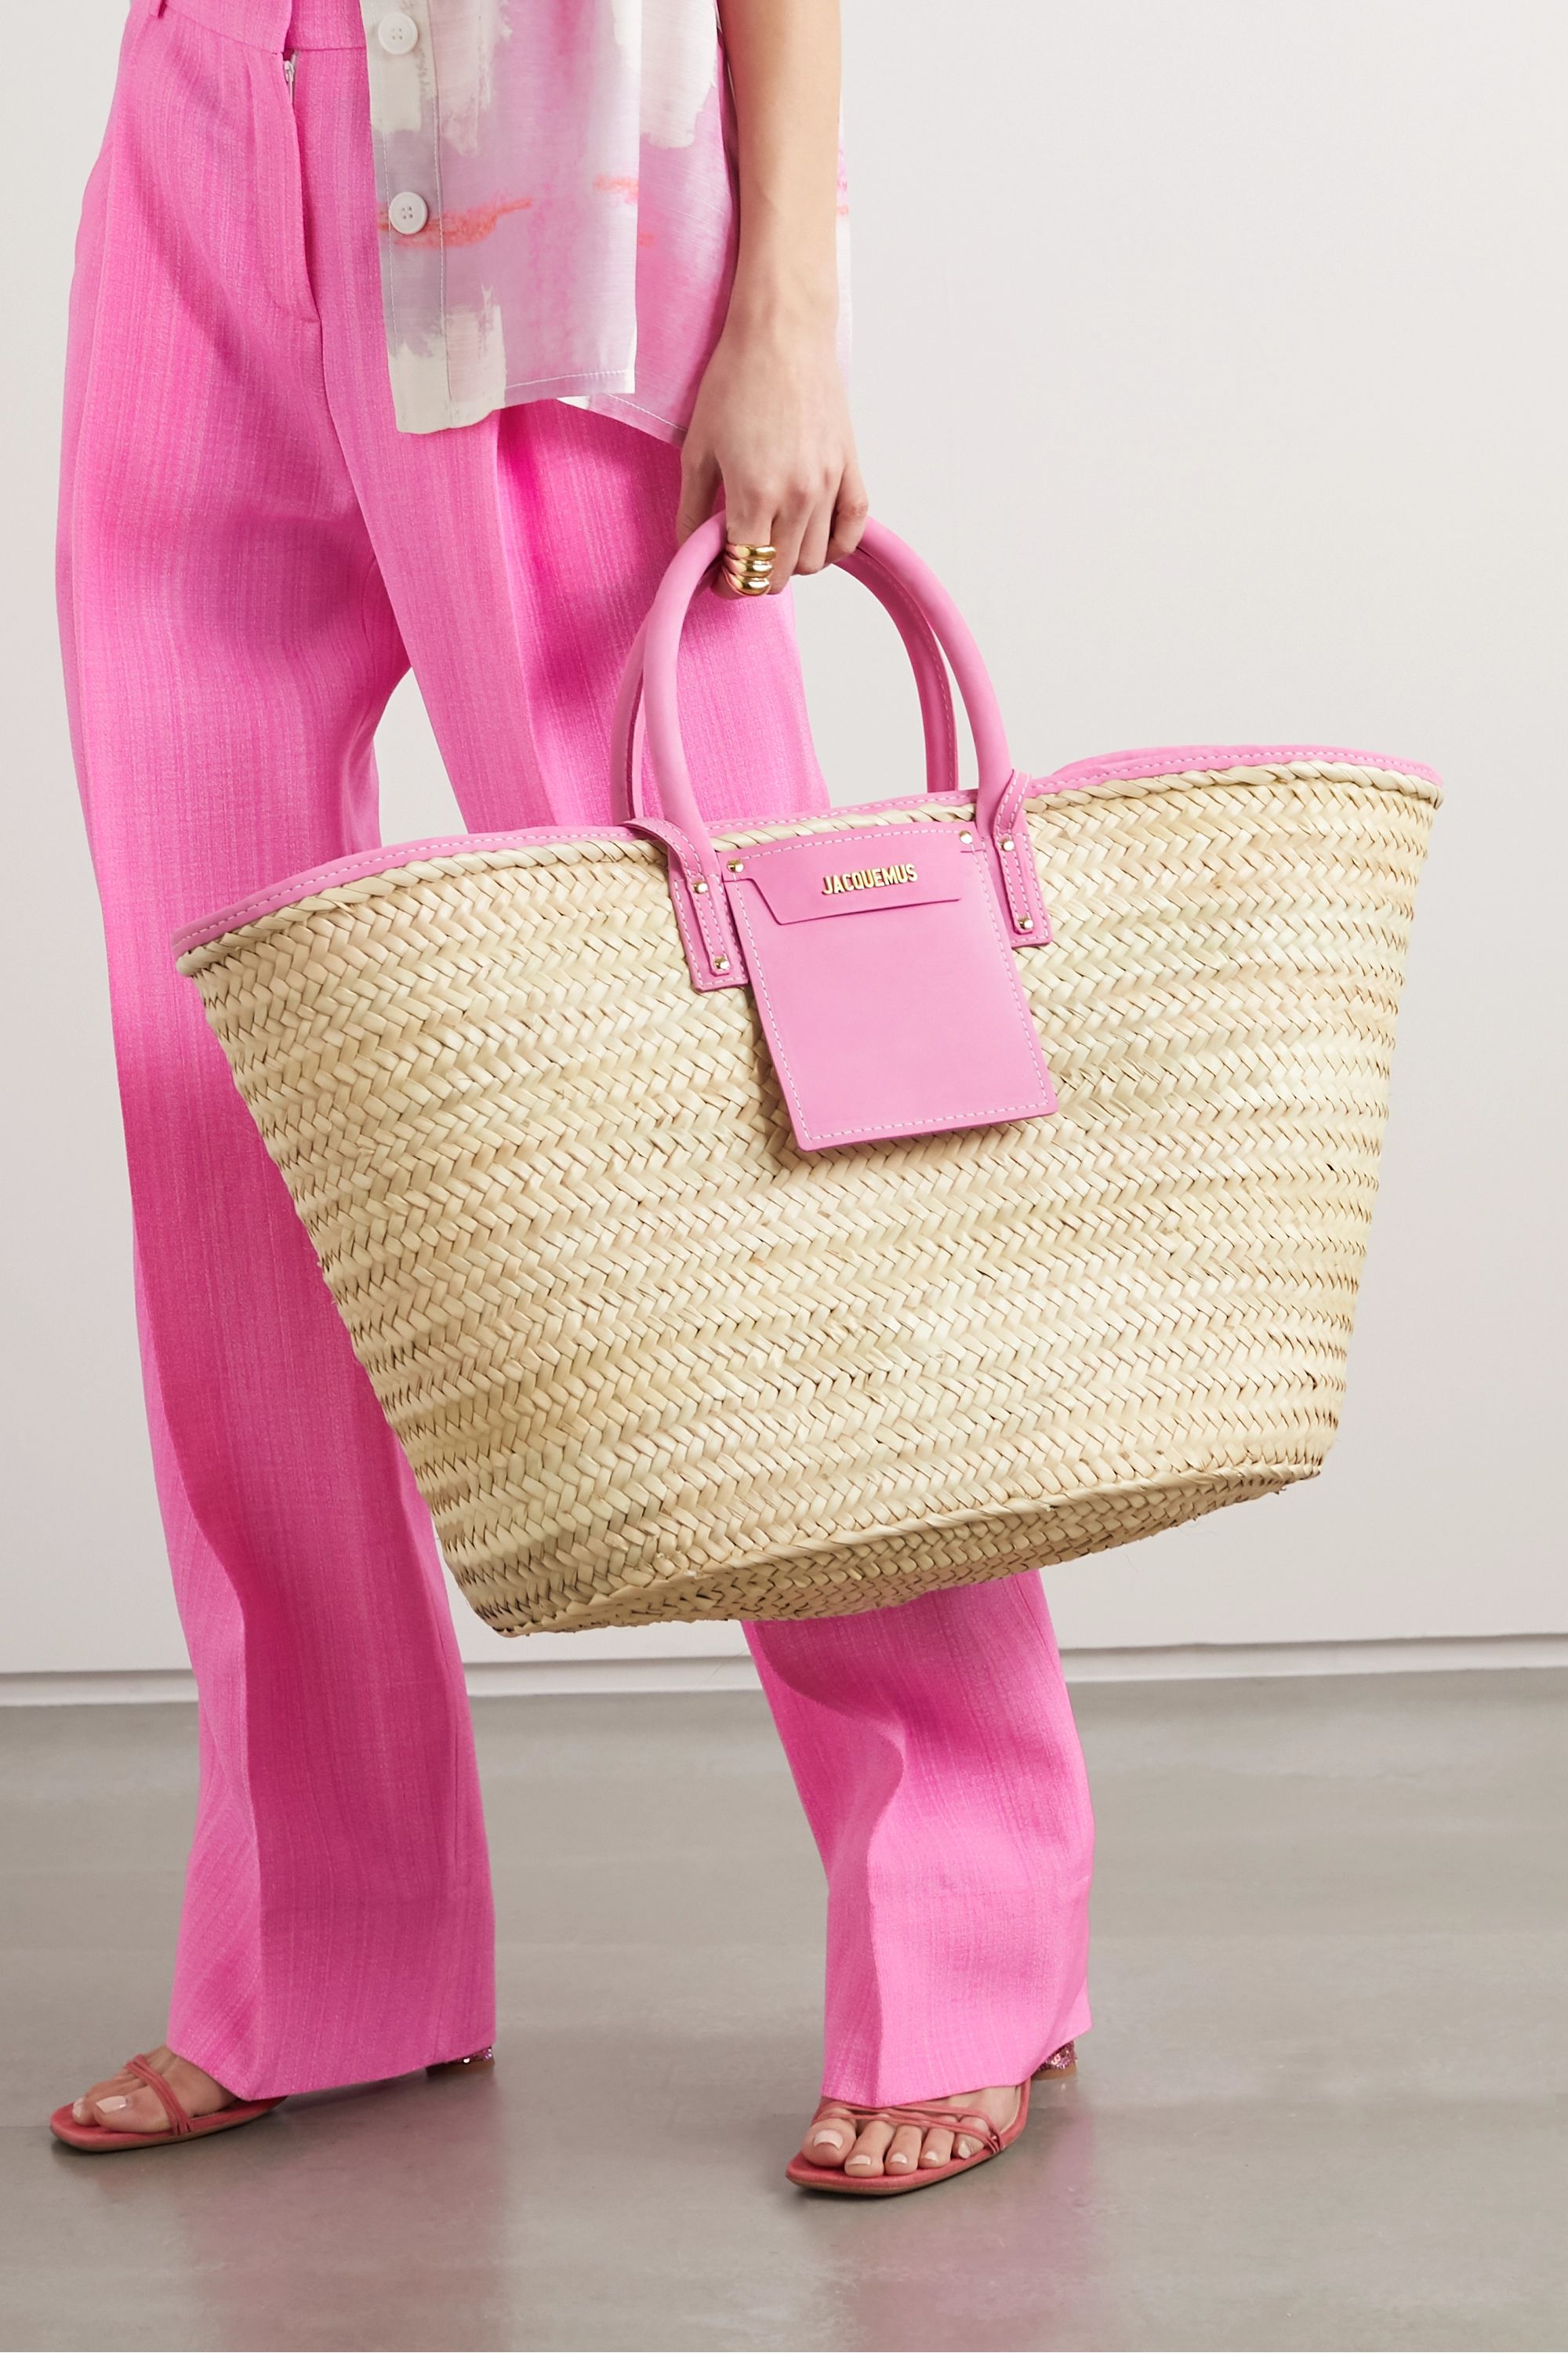 Jacquemus Soleil large nubuck-trimmed straw tote